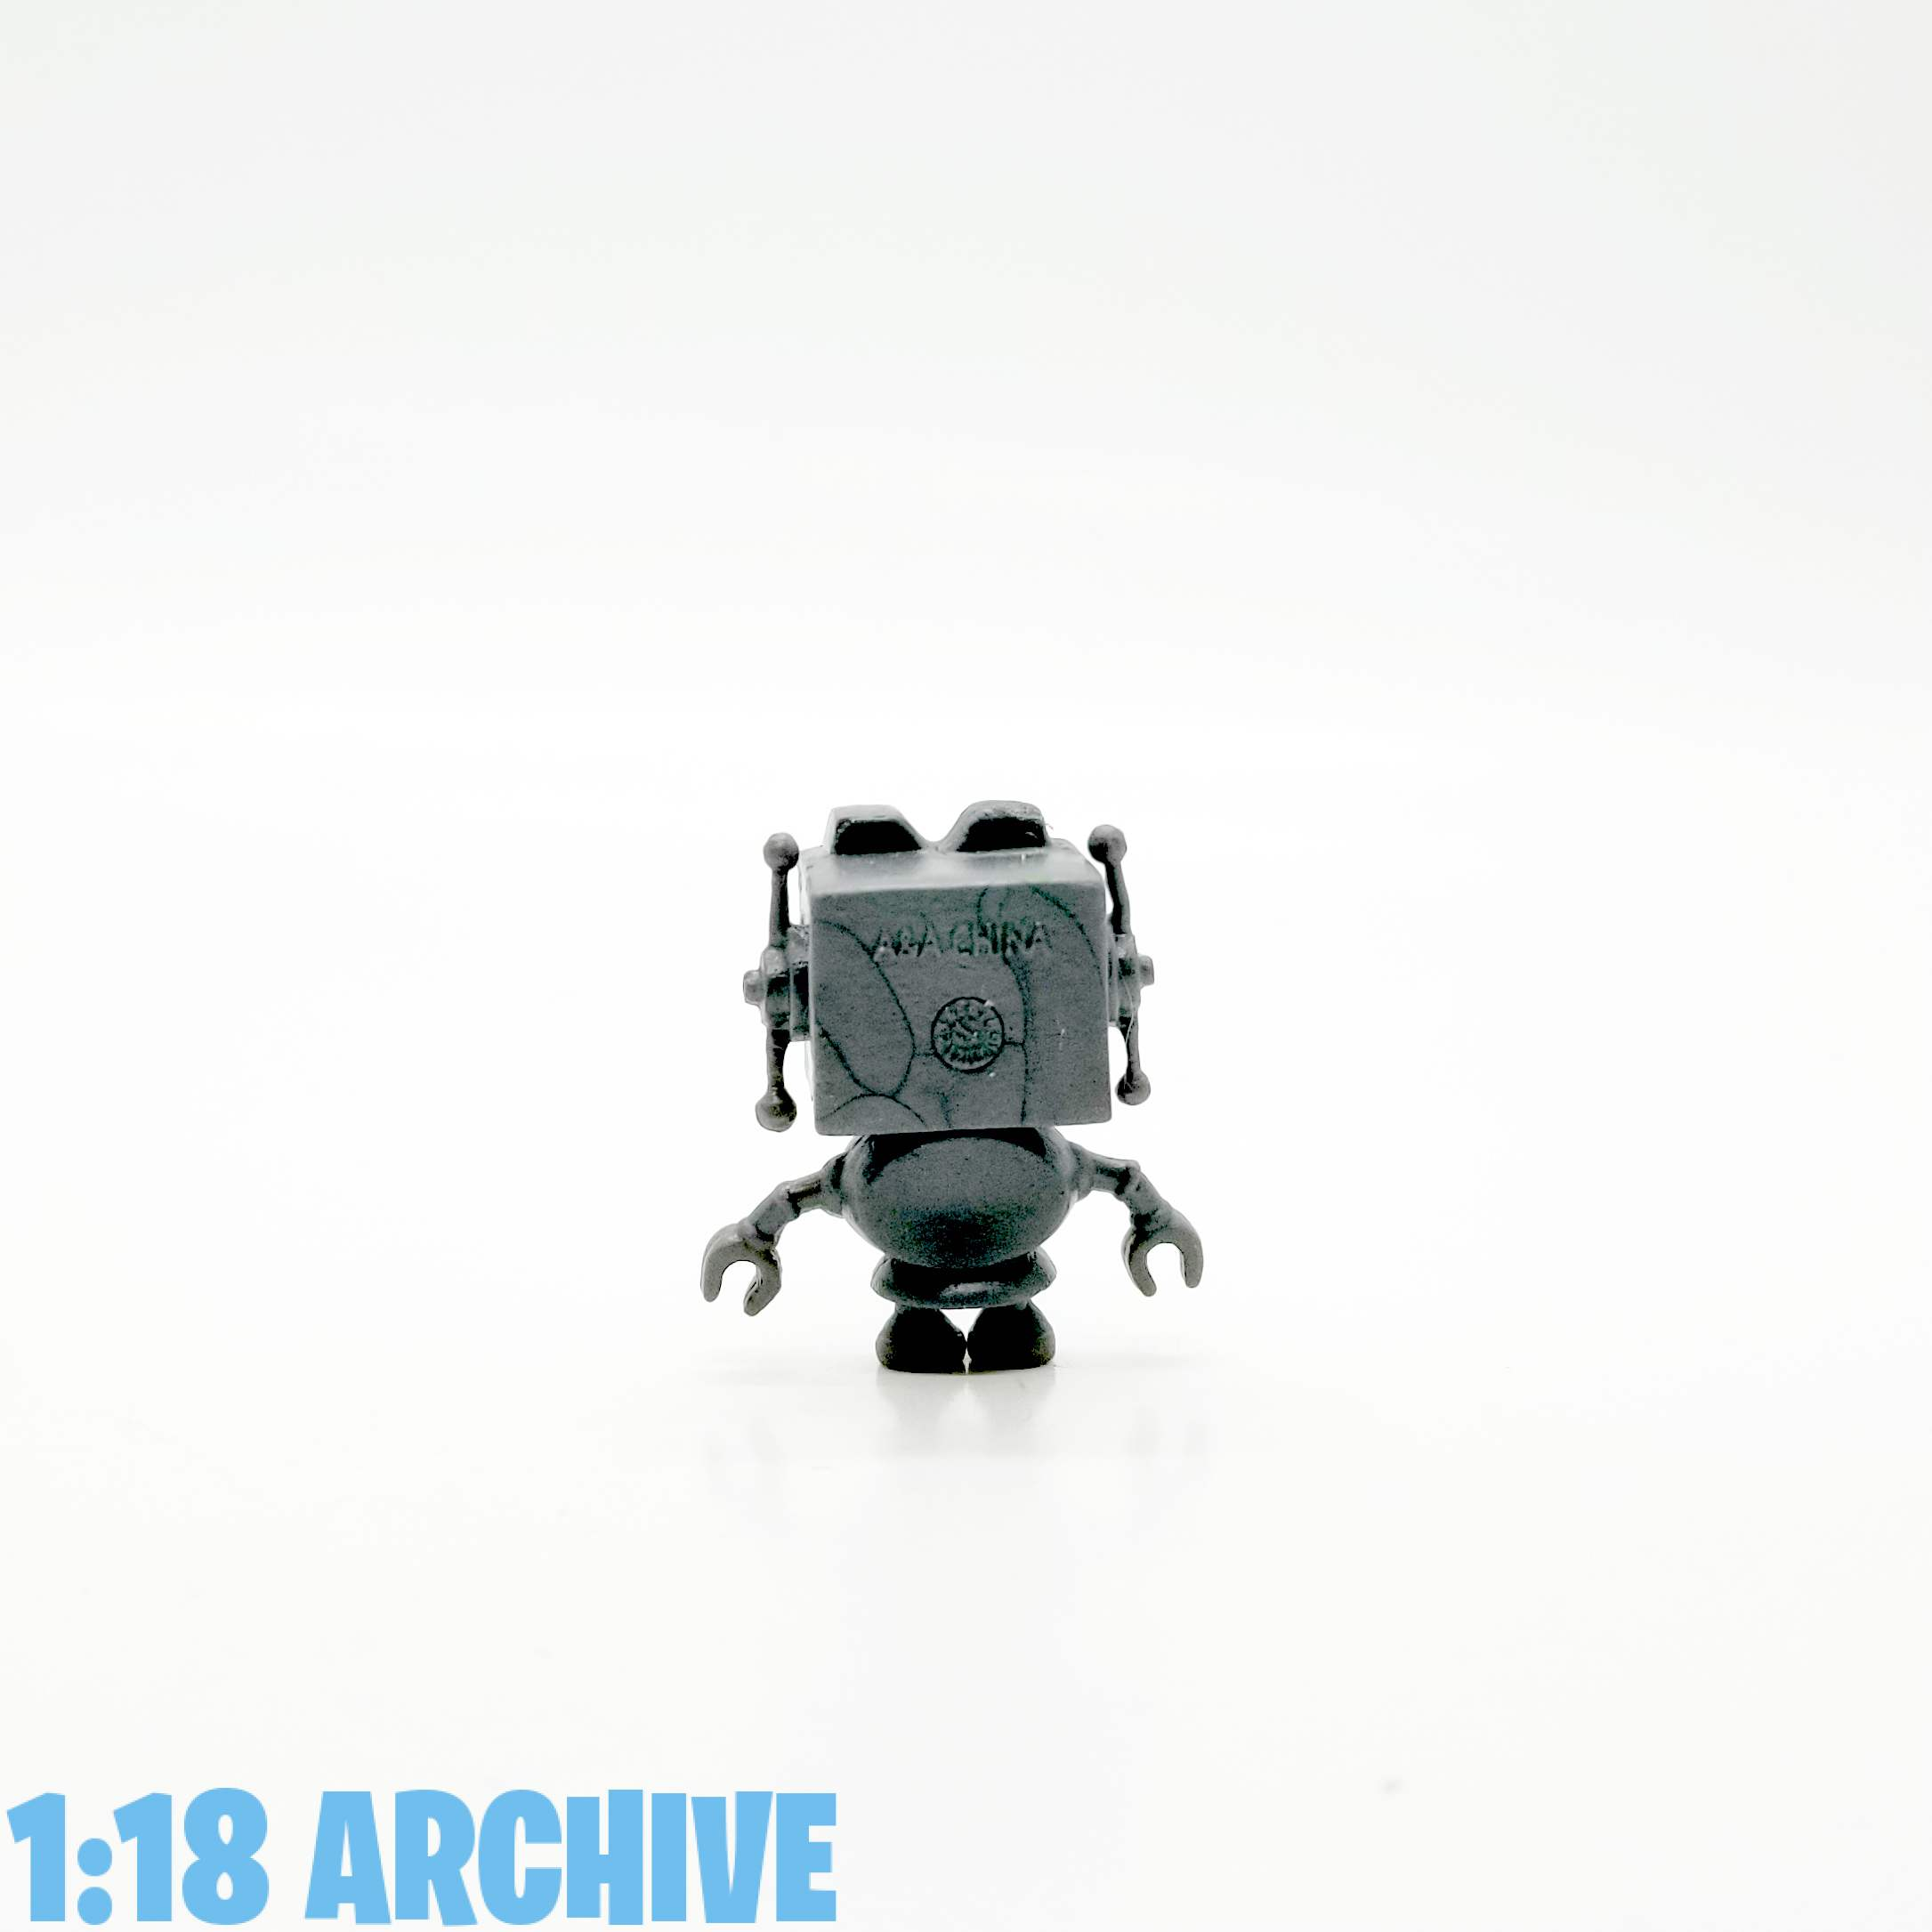 118_Action_Figure_Archive_Droid_of_the_Day_Reviews_Checklist_Guide_Gumball_Shox_Robot